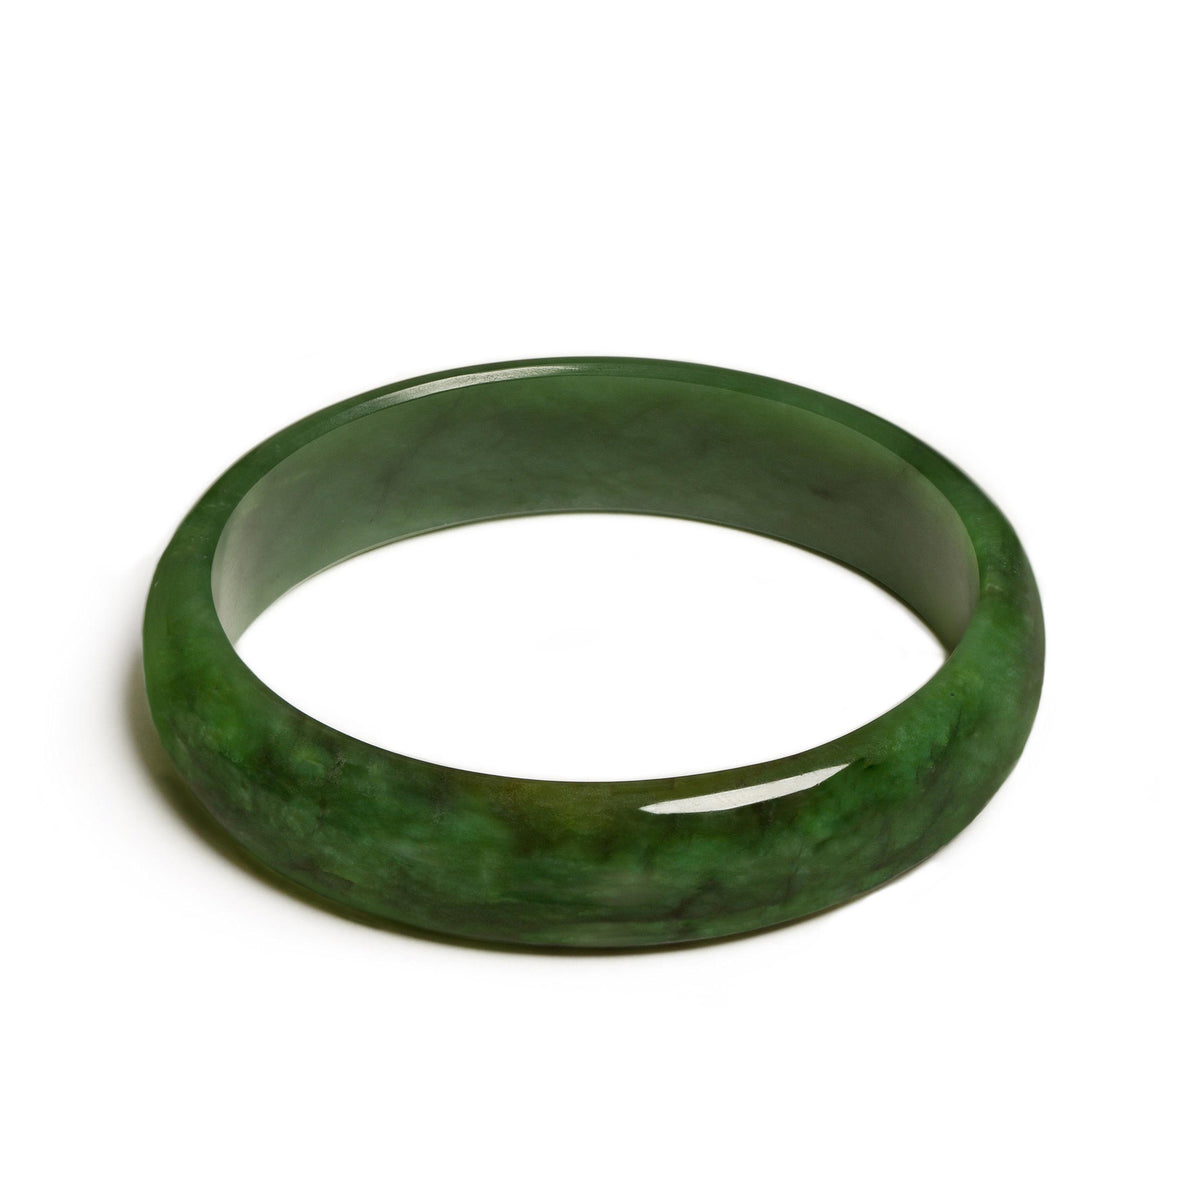 66mm Internal Diameter x 77mm External Diameter / New Zealand Pounamu // RSBAN66-2188